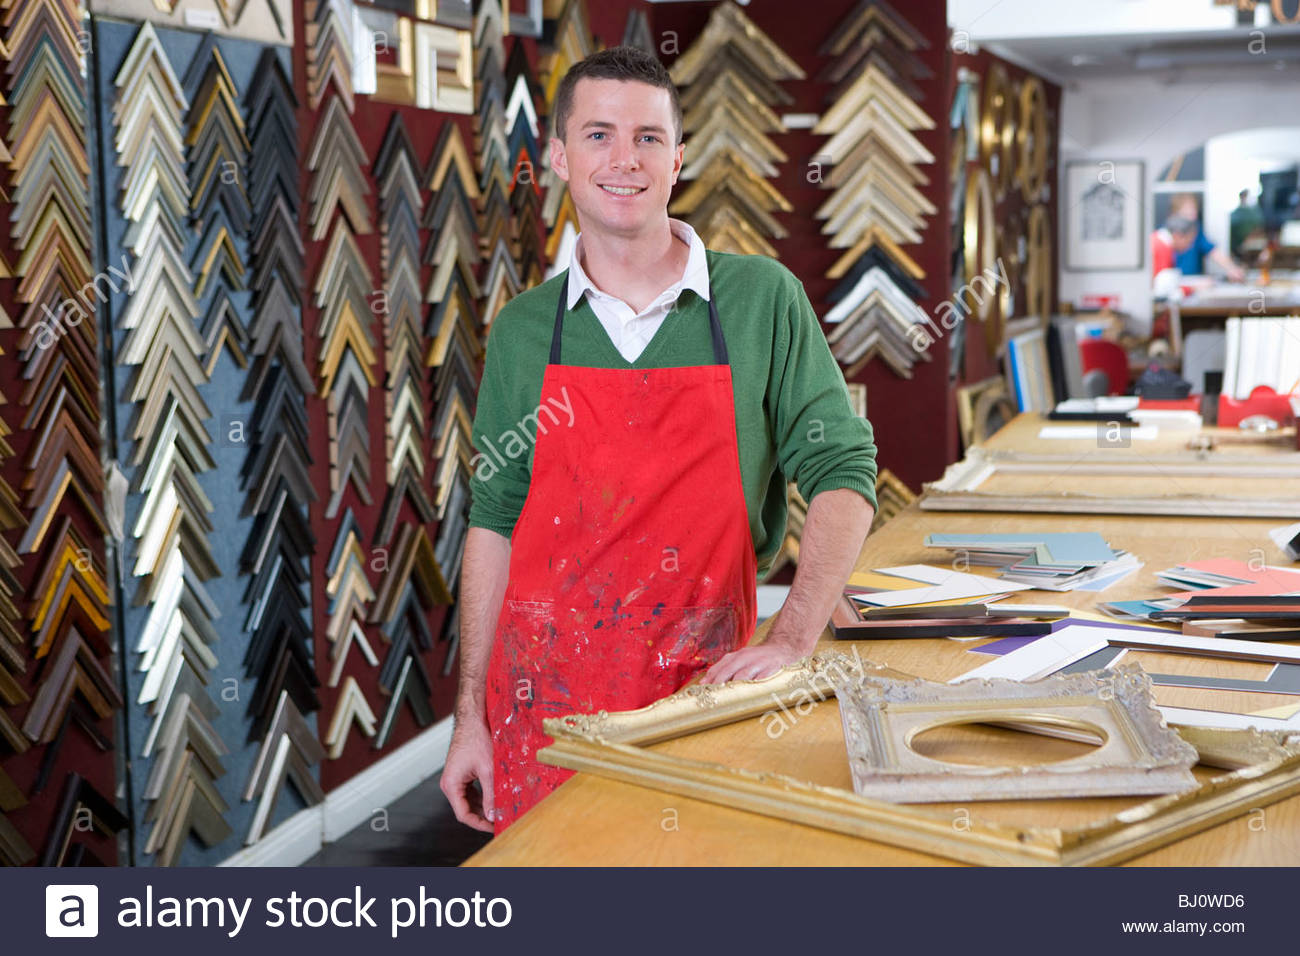 Salesman standing en frame shop Photo Stock